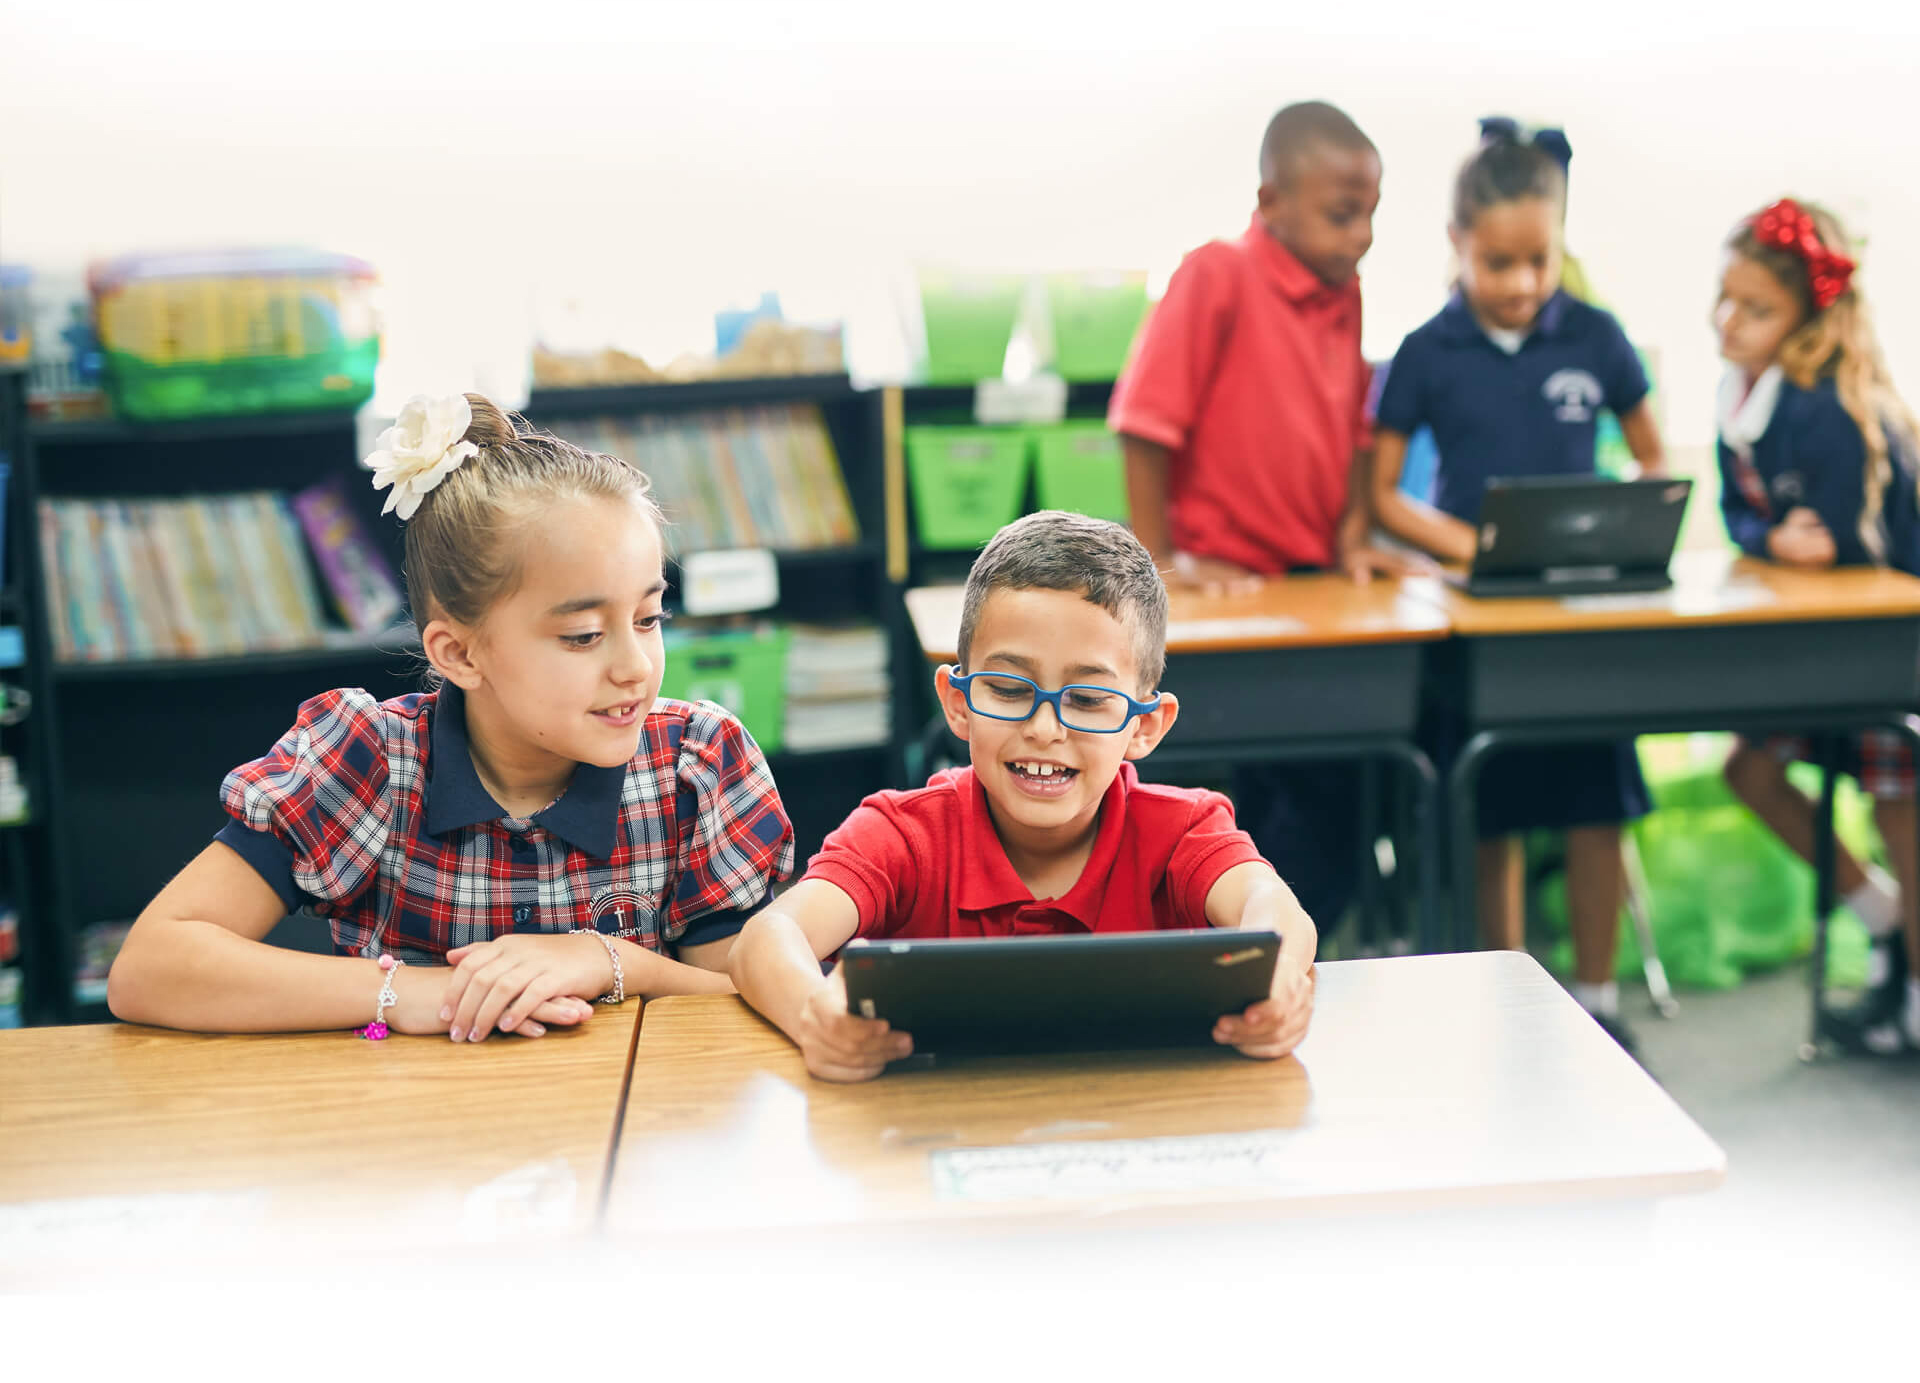 Students at Rainbow Christian Academy using their tablets in the classrom to learn